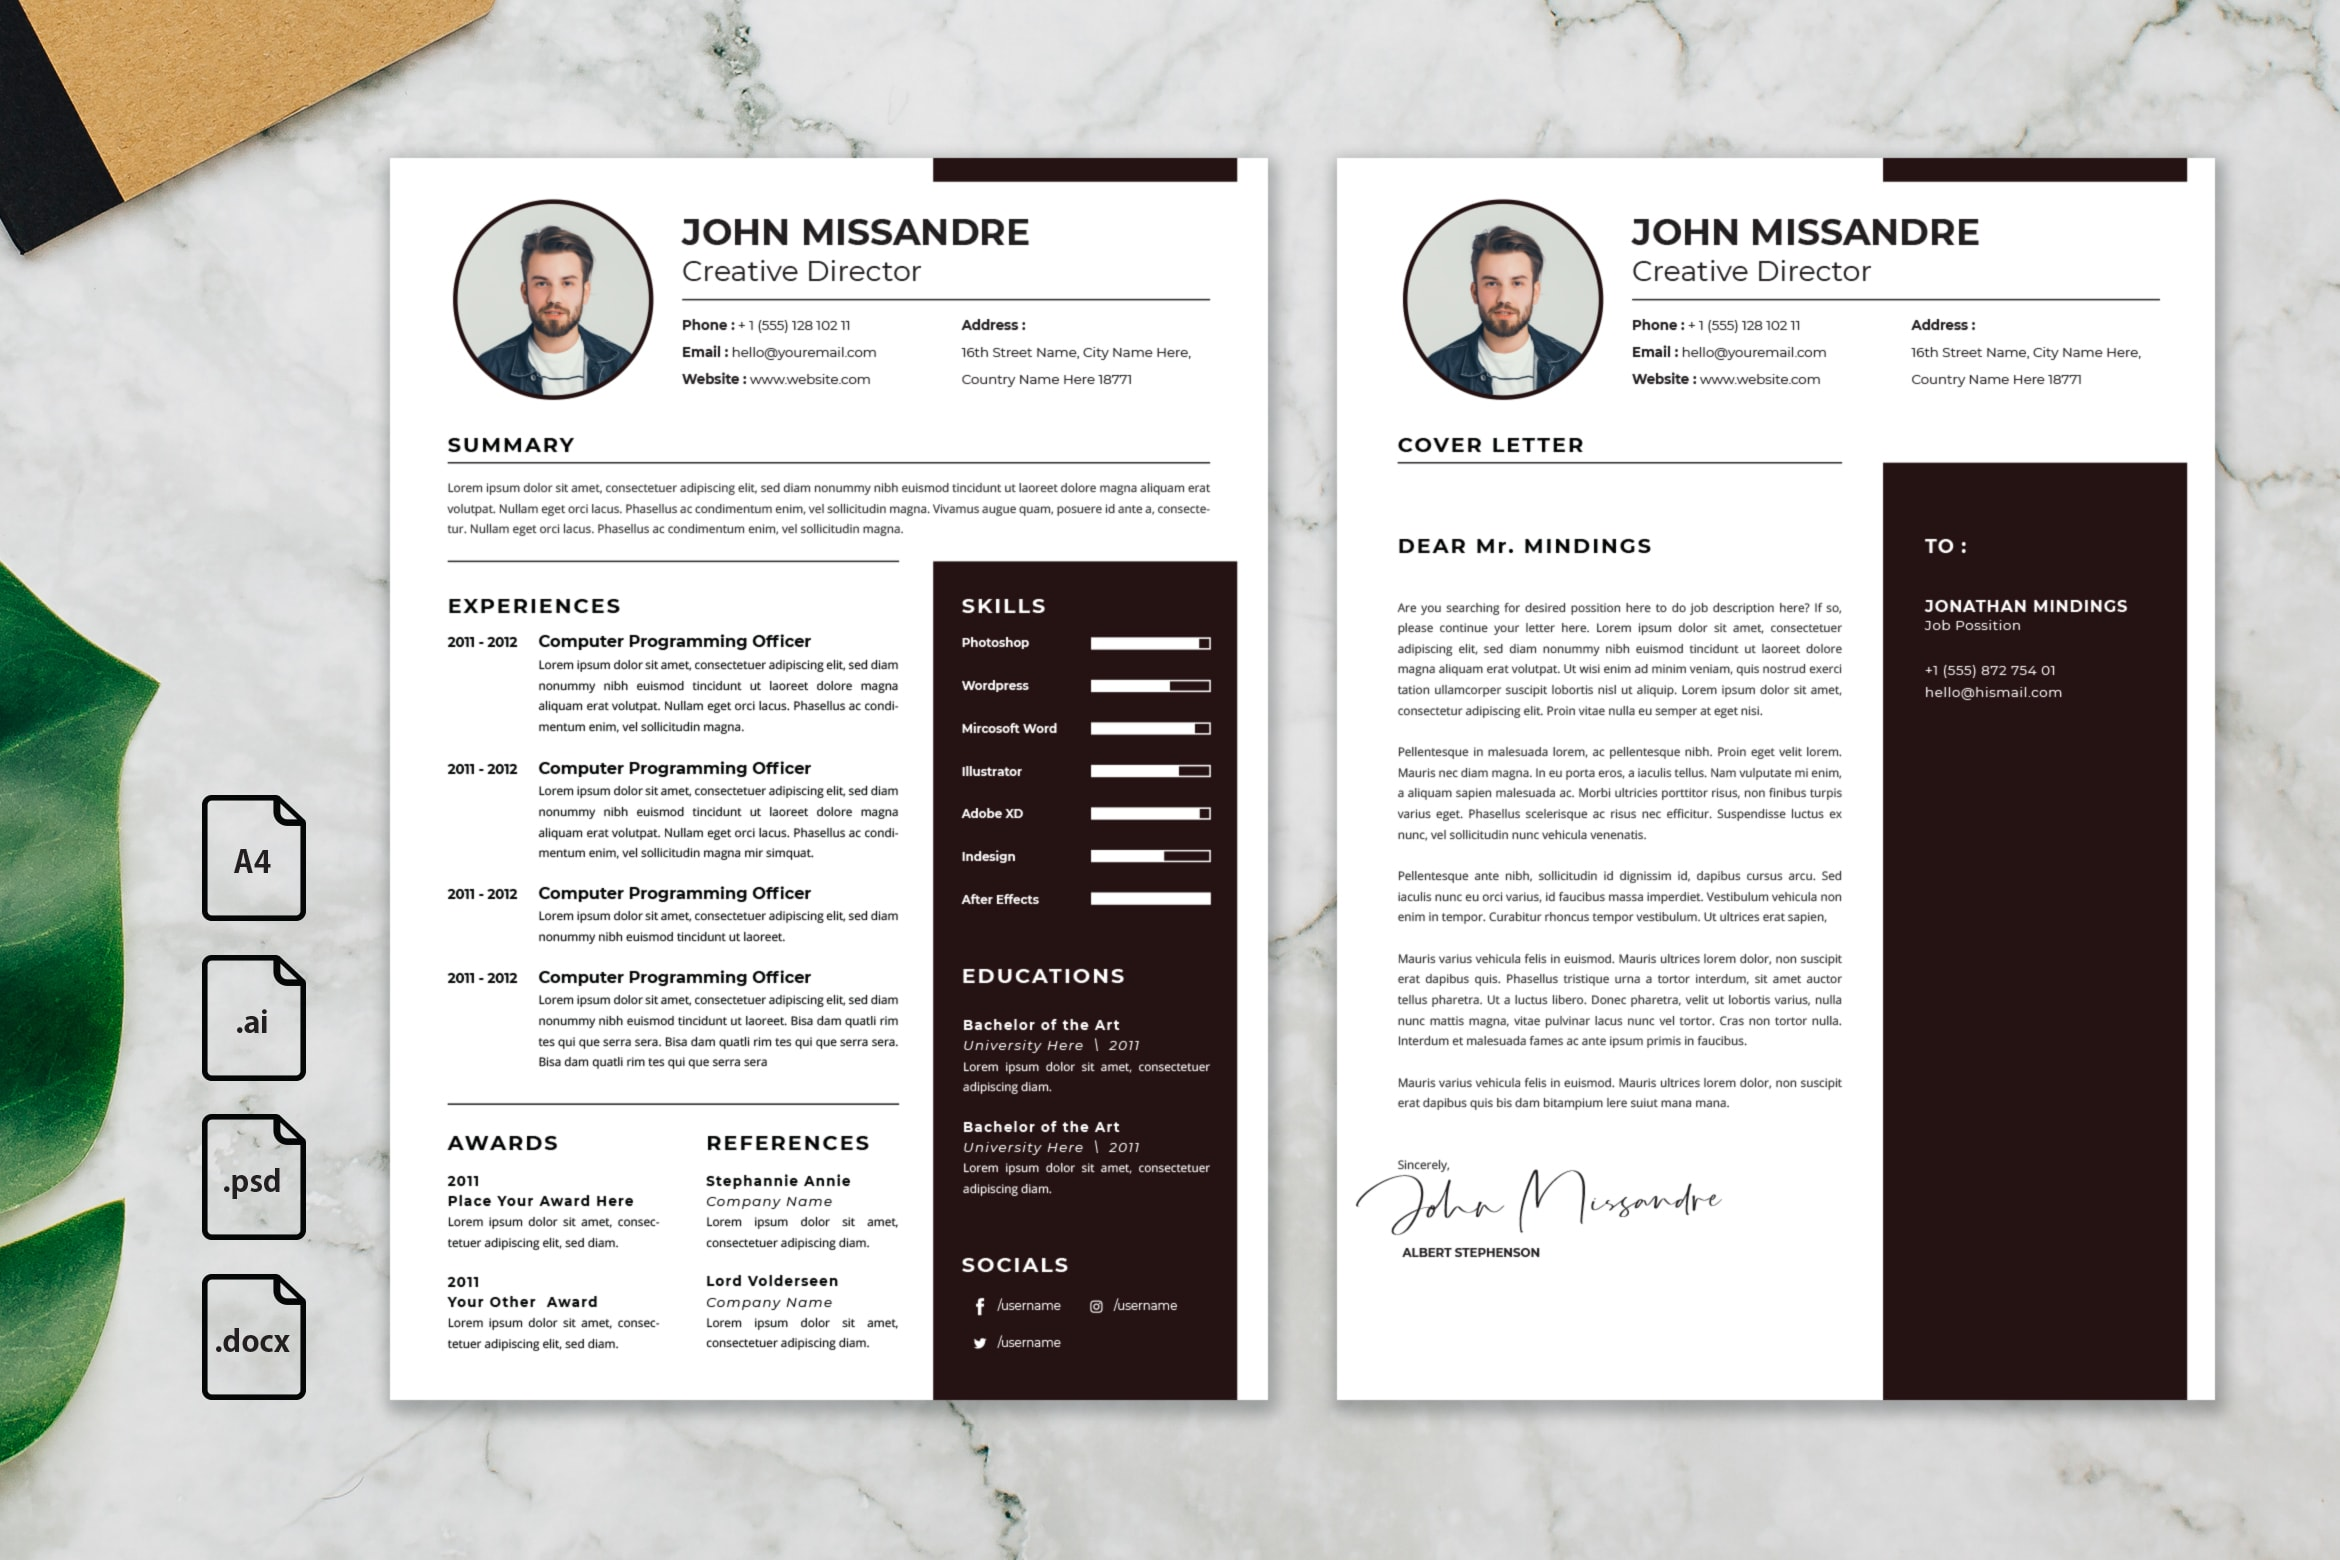 CV Resume - Creative Director Profile